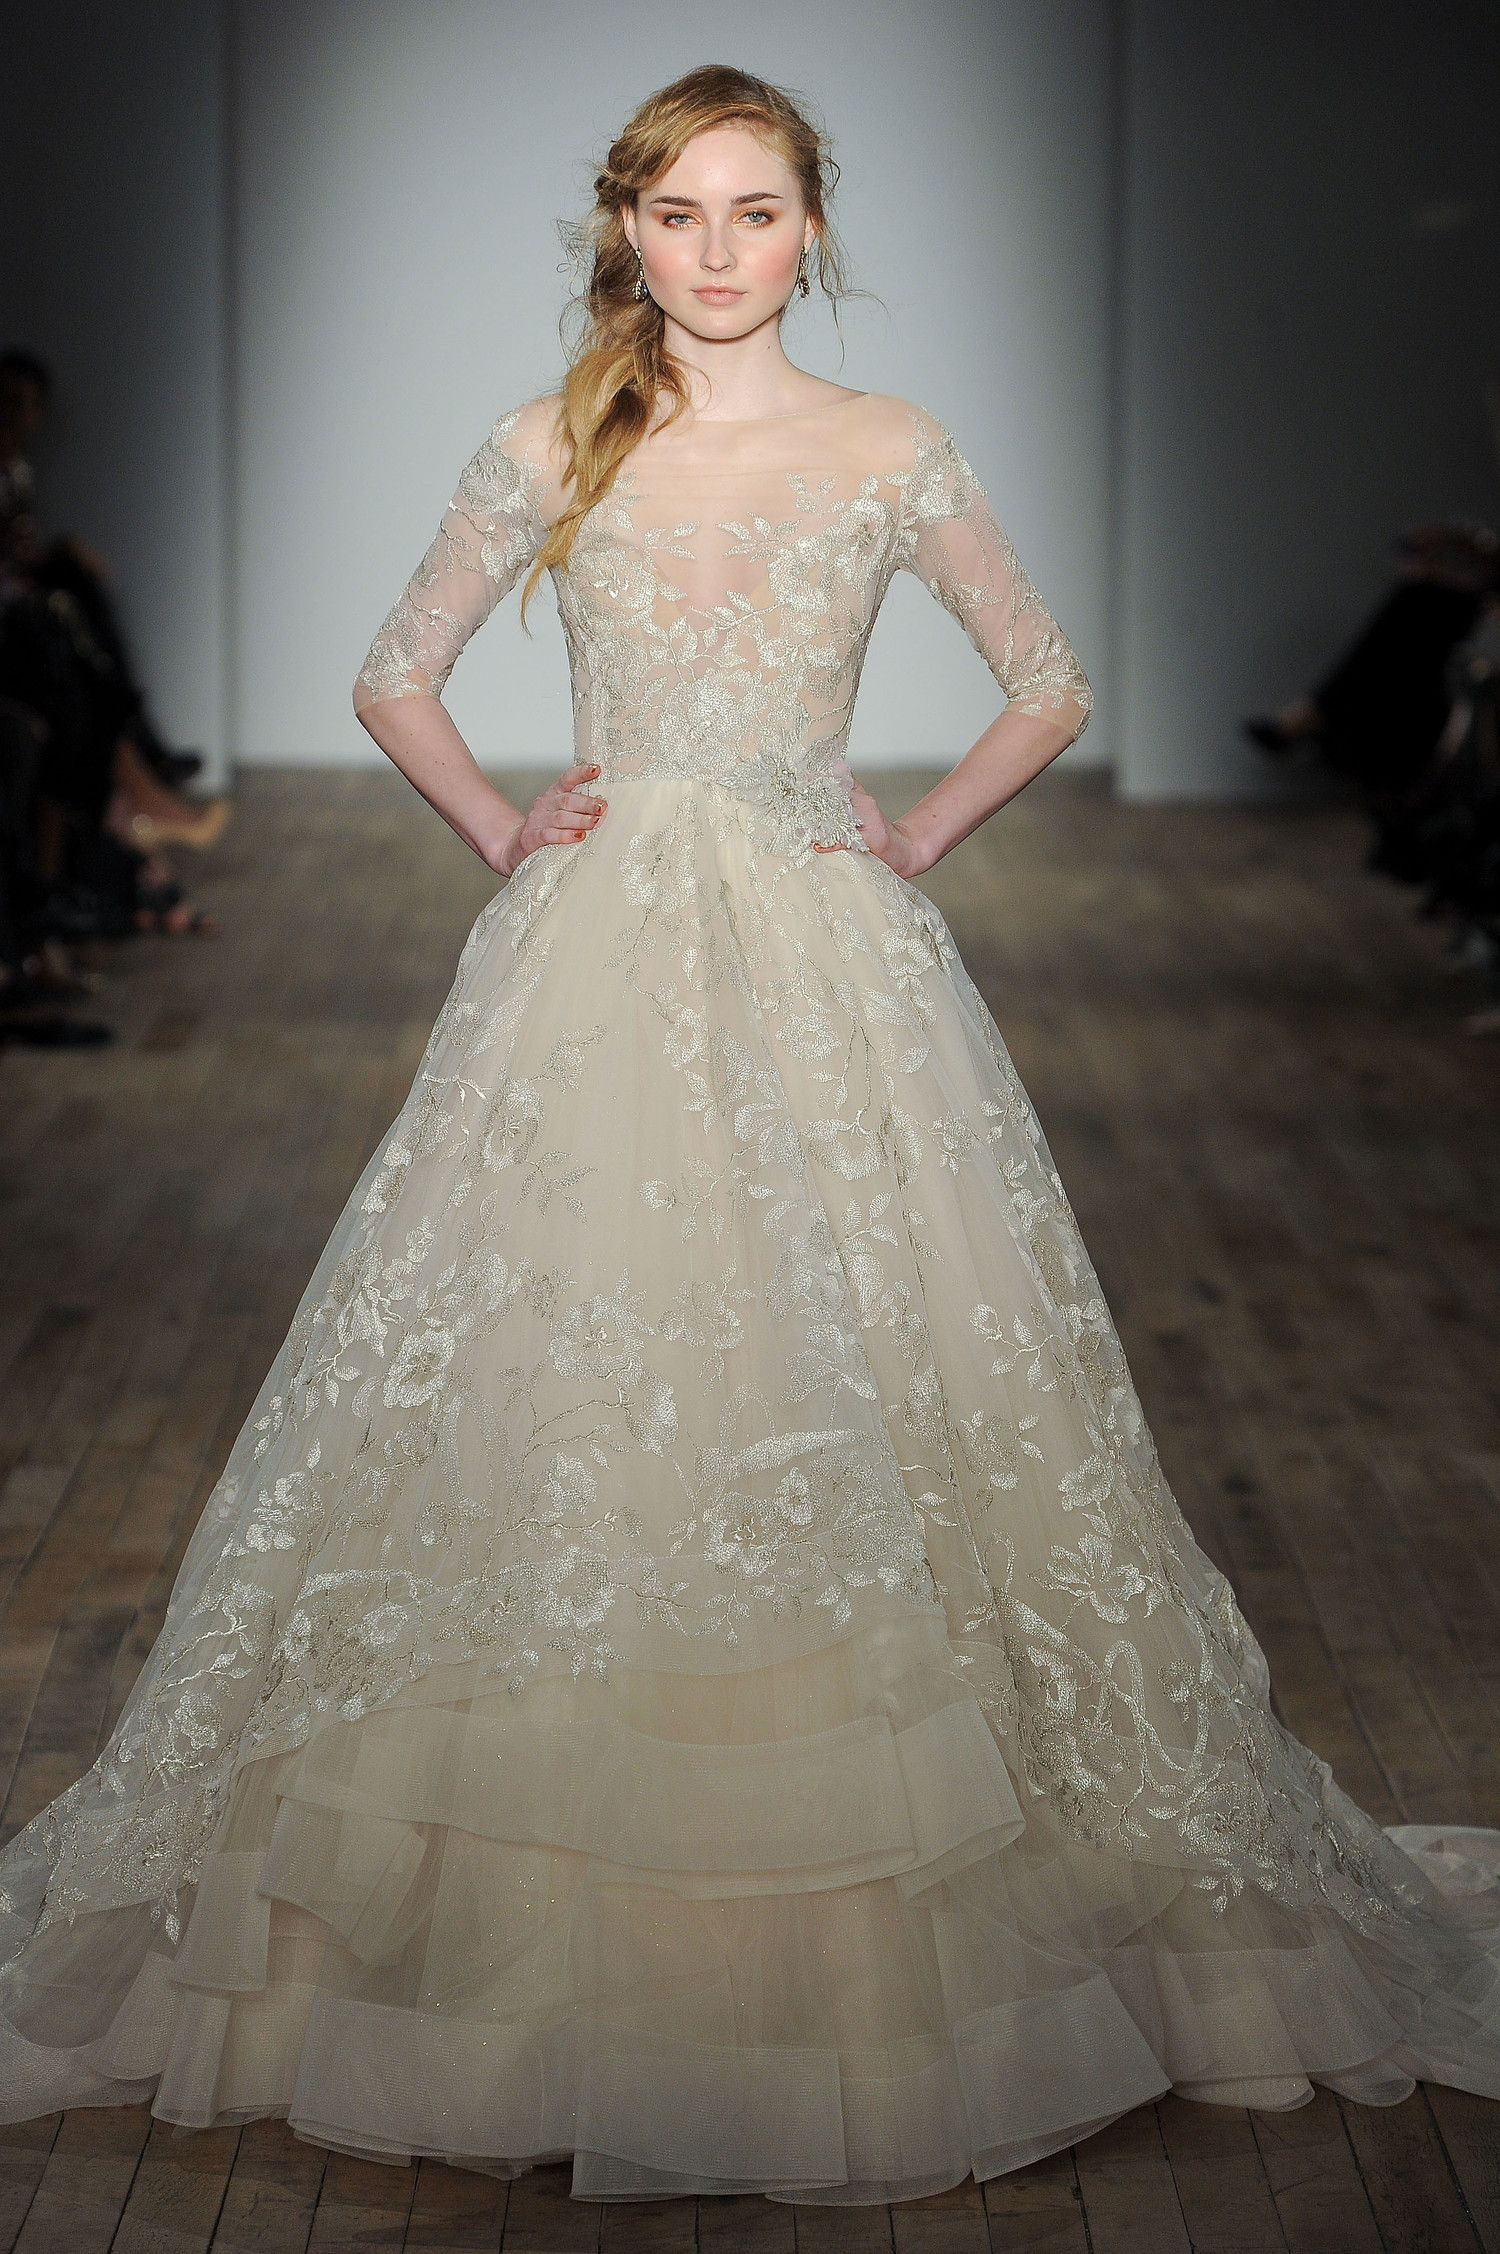 Style 3758 Tulle Ball Gown With An Illusion Off The Shoulder Neckline Three Quarter Length Sleeves And A Jeweled Flower